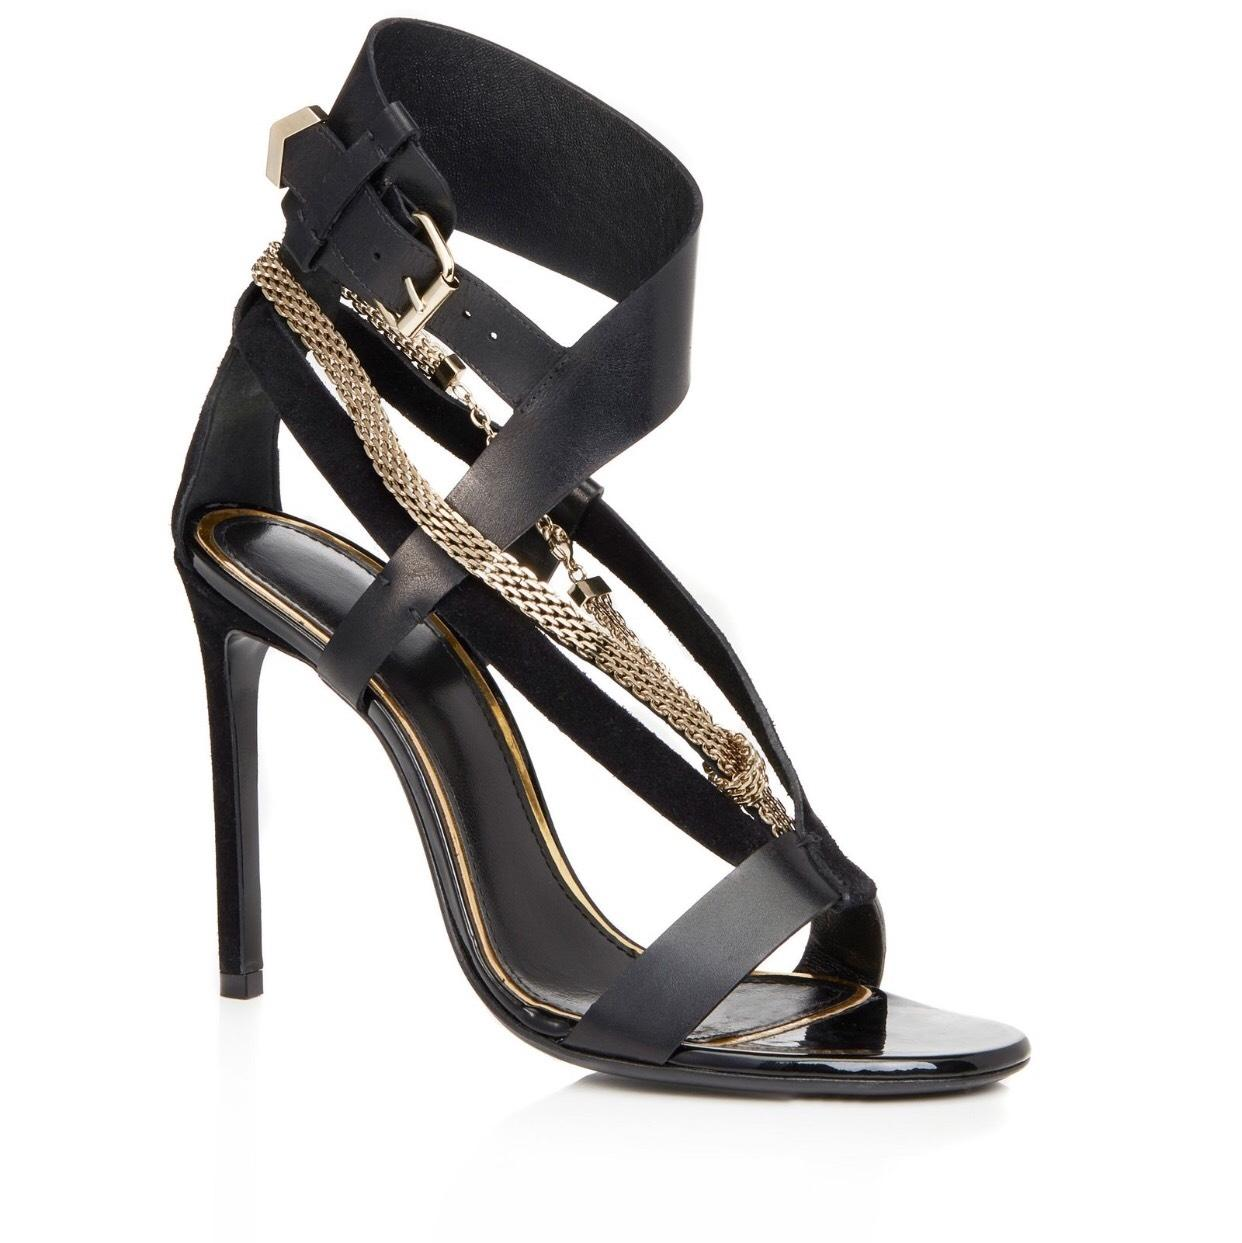 Lanvin Black Sandal with Chain Strap Formal Shoes Size EU 36 (Approx. US 6) Narrow (Aa, N)